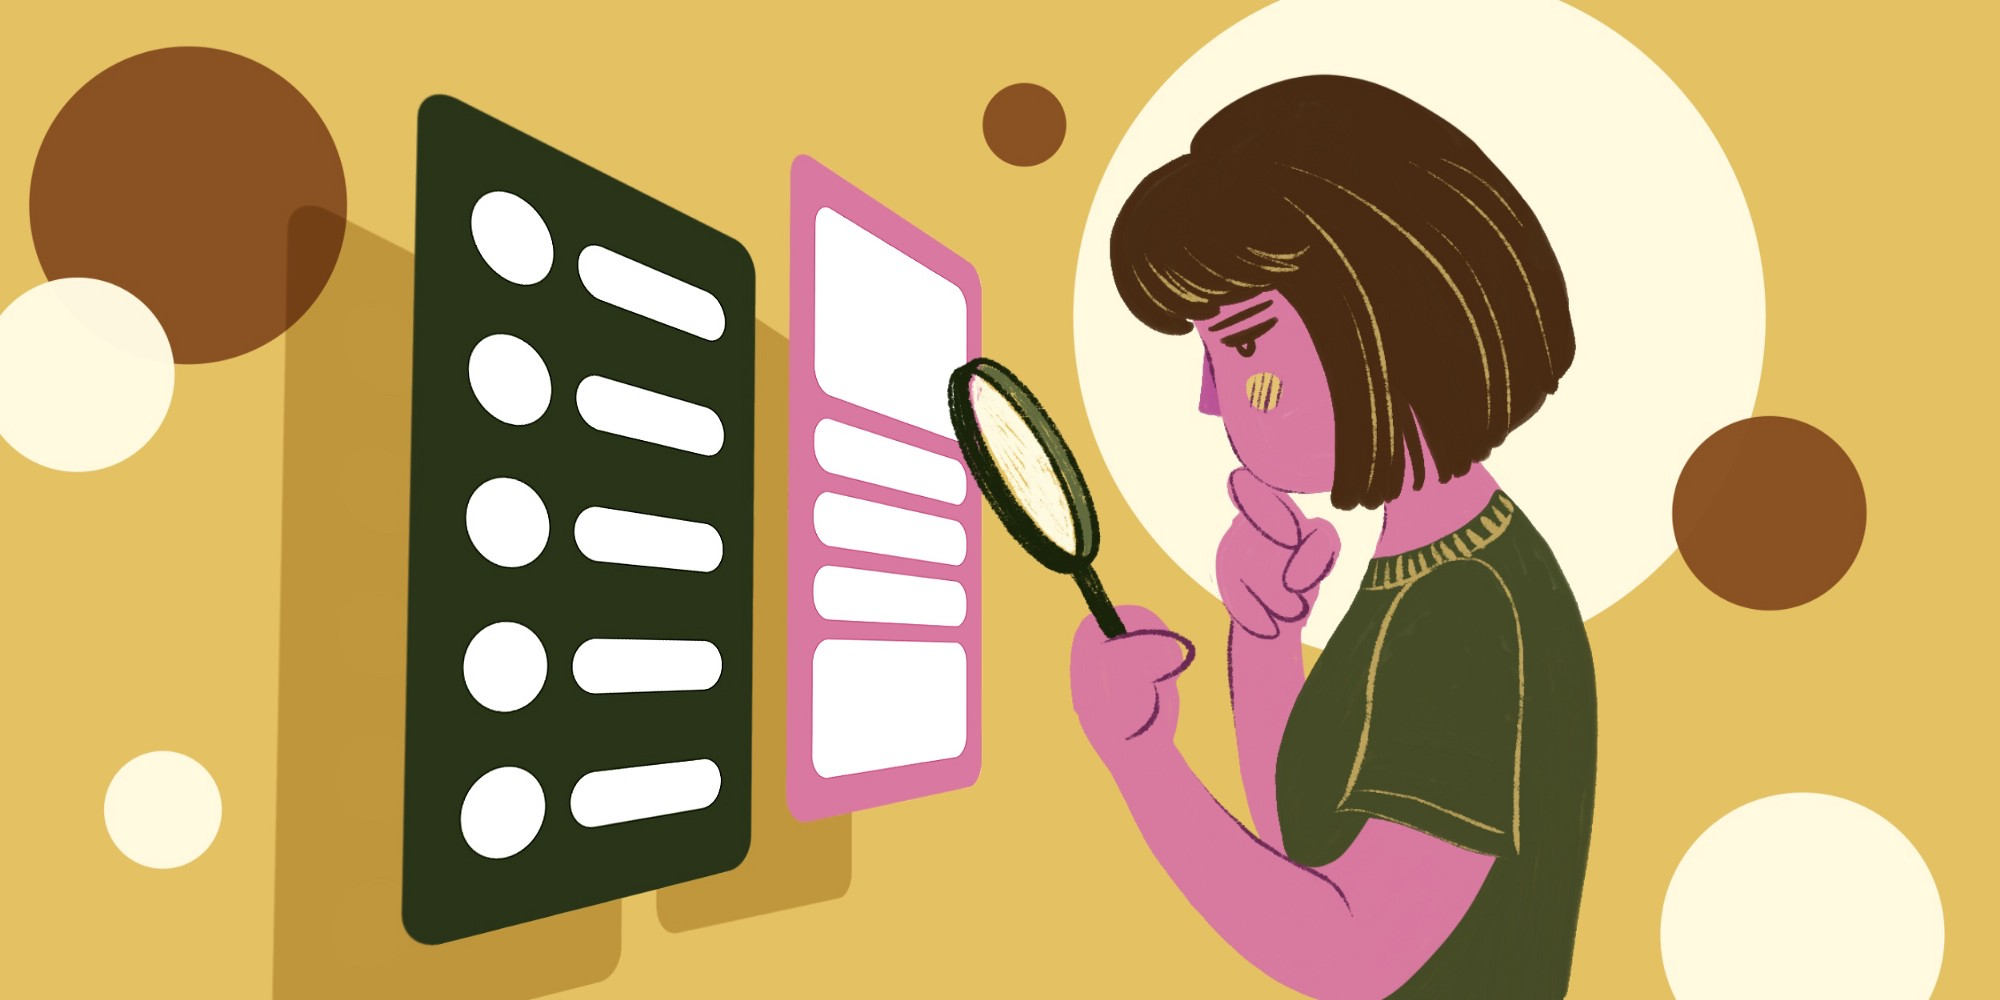 Colorful illustration of a woman holding a magnifying glass and examining some abstract UI screens